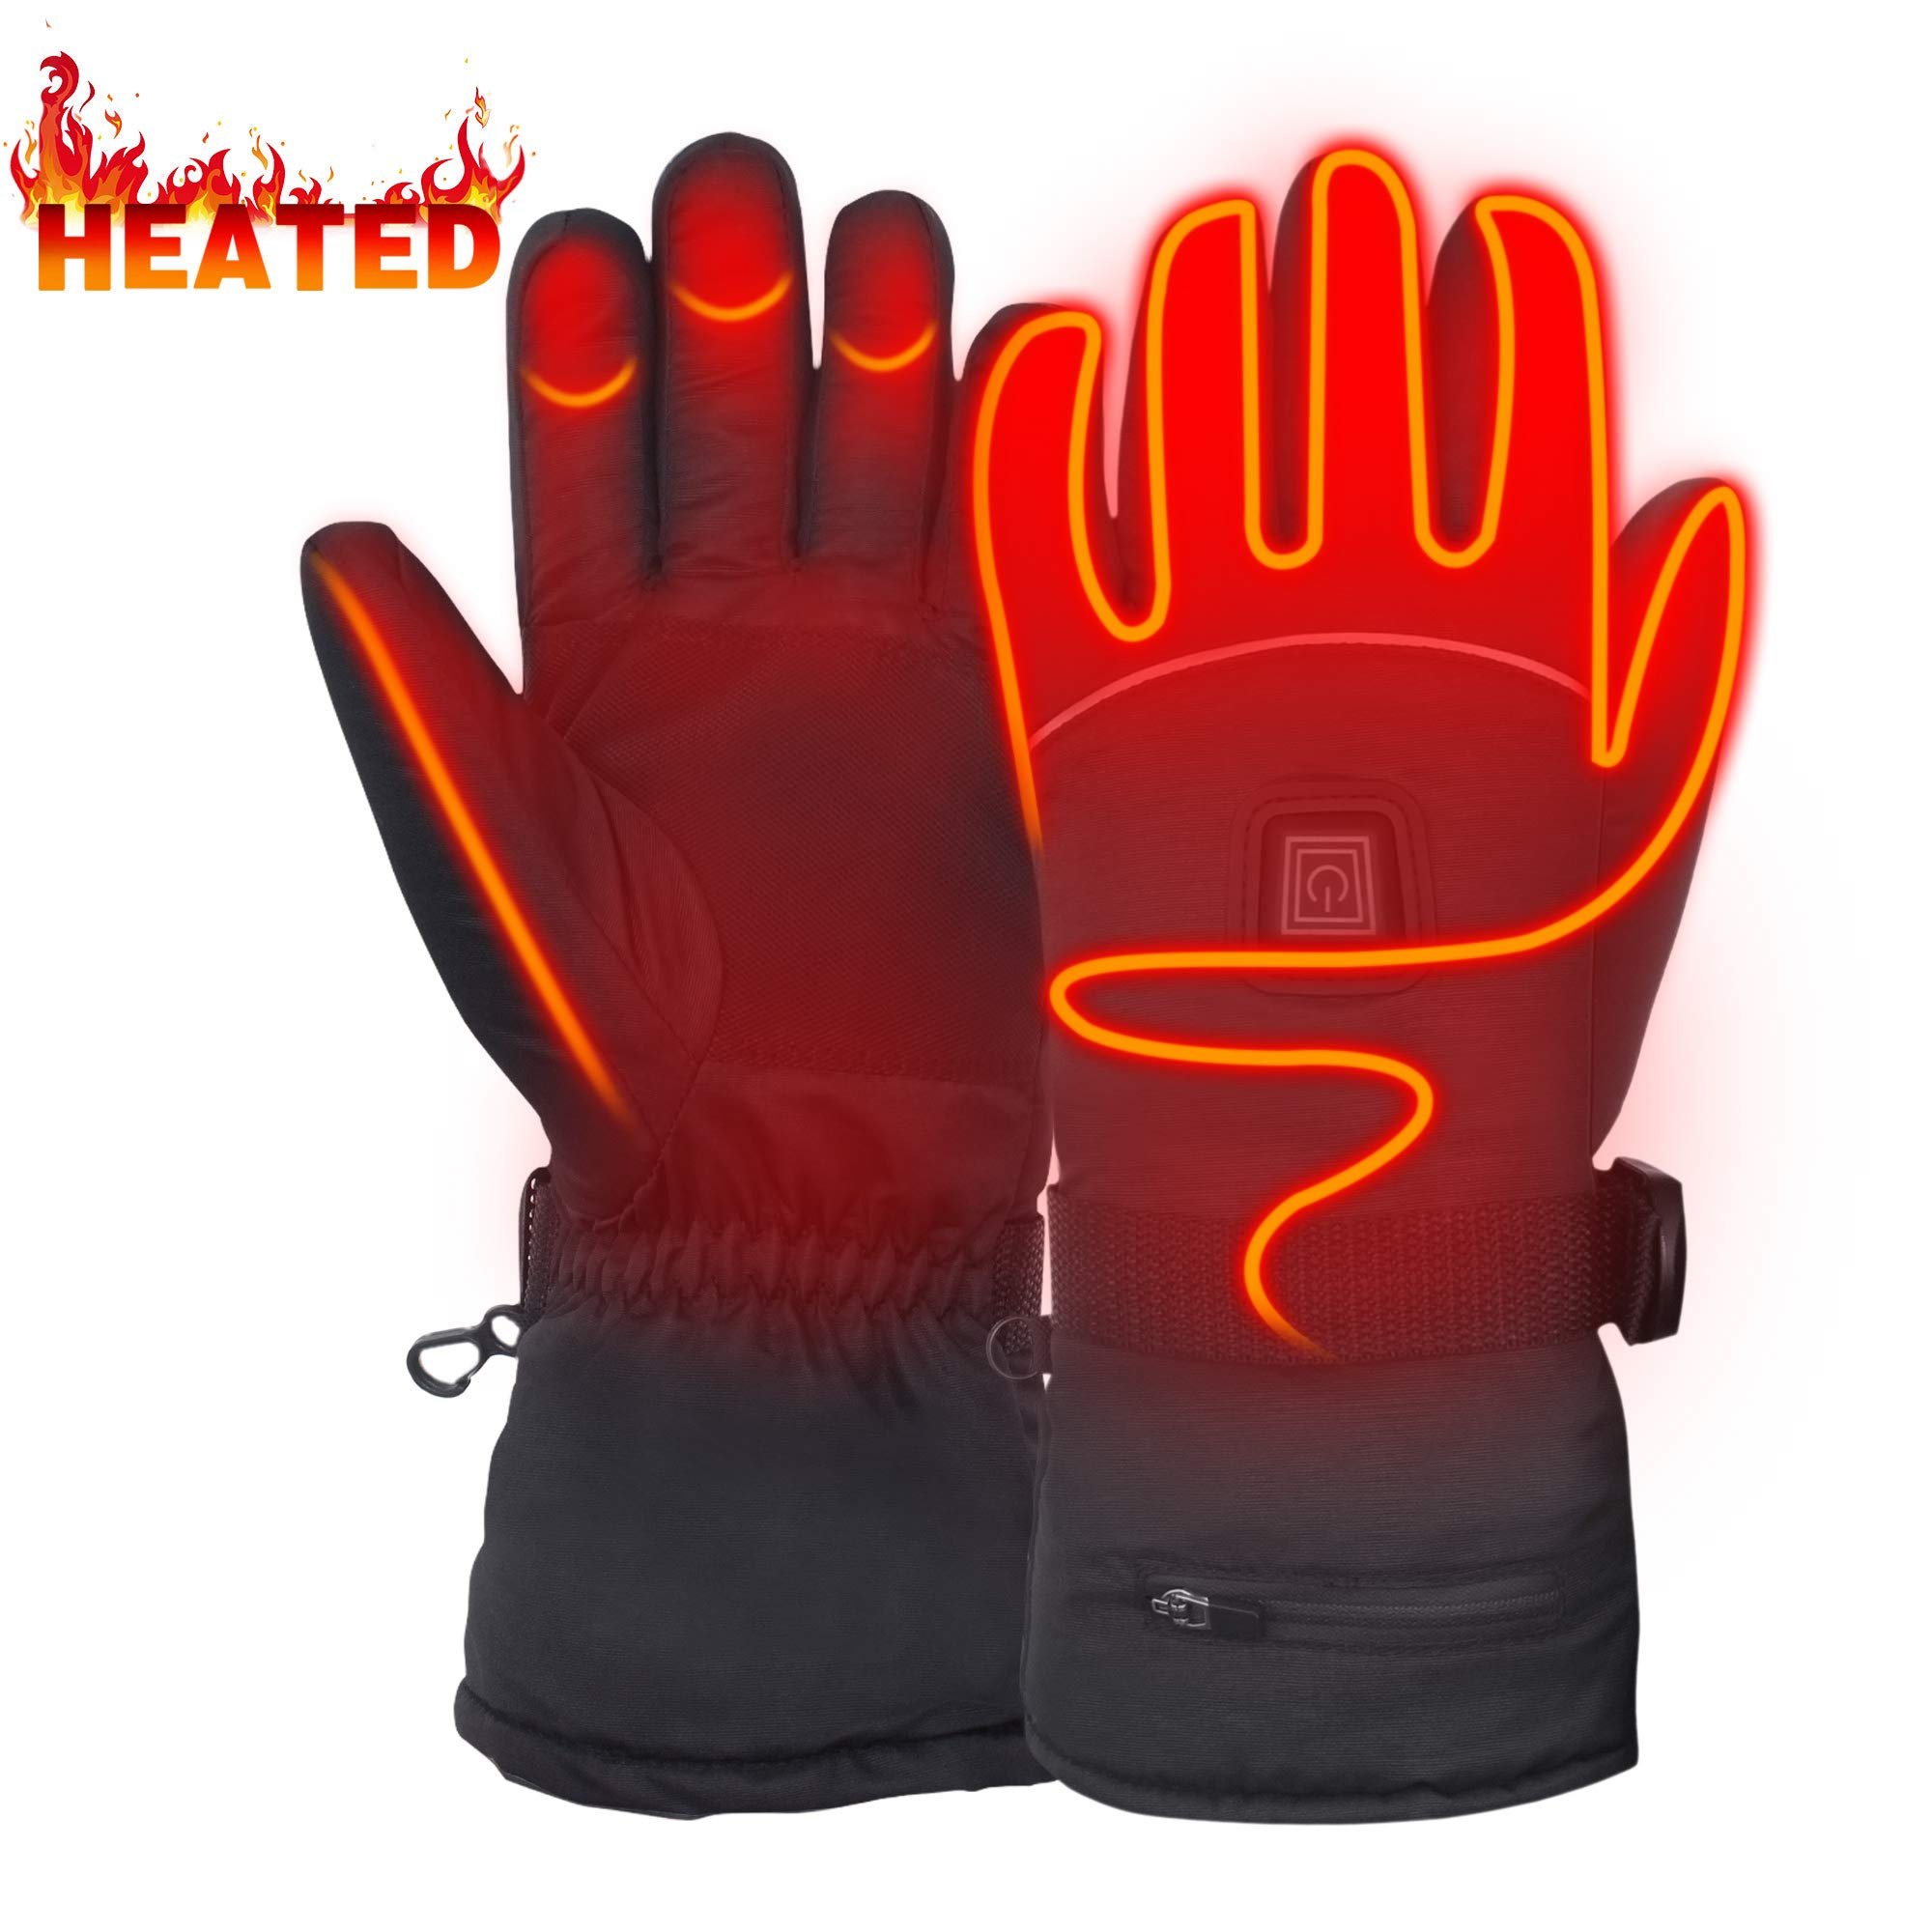 Heated Gloves for Men Woman Hand Warmers Electric Btteries Gloves Motorcycle Gloves with 7.4 V Rechargeable Batteries Heating Gloves for Hunting Shoveling Snowballs Riding L by MMlove